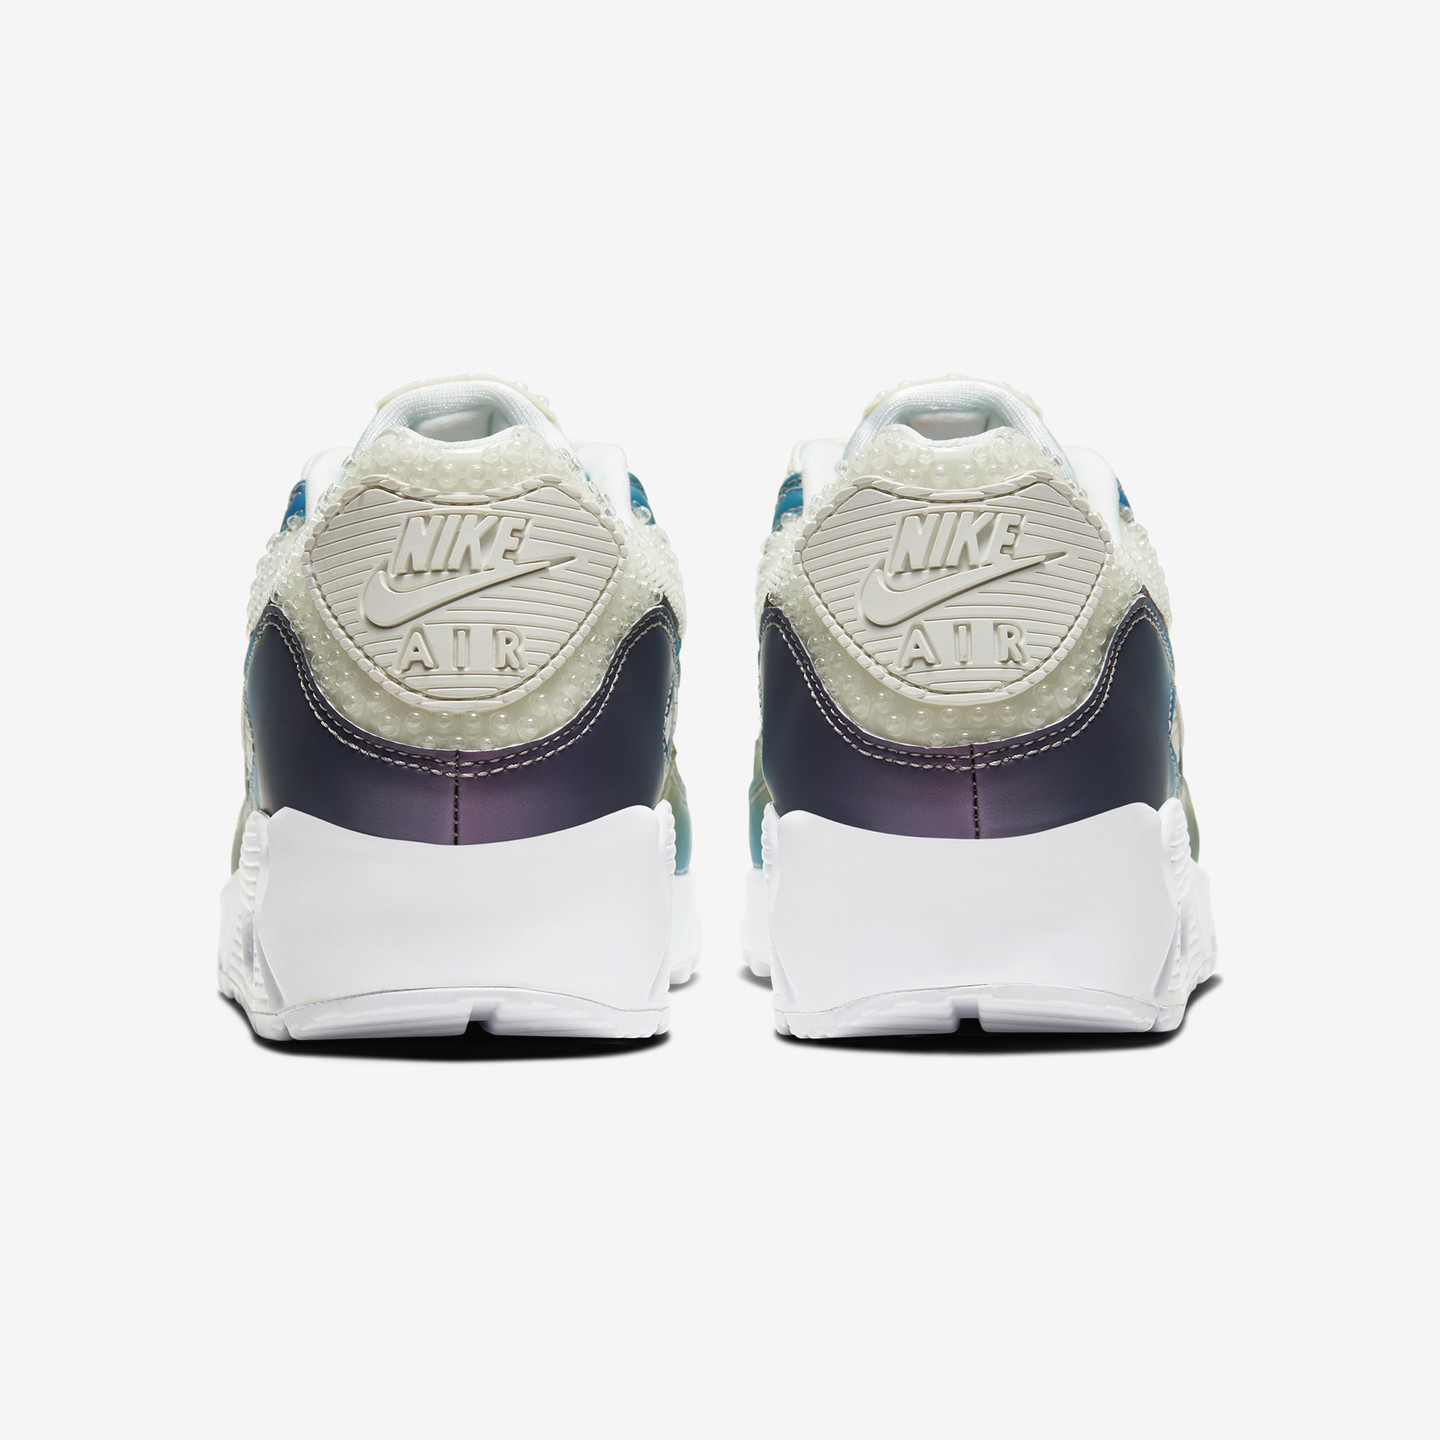 Nike Air Max 90 20 'Bubble Pack' Summit White / Multi-Color / White / Black CT5066-100